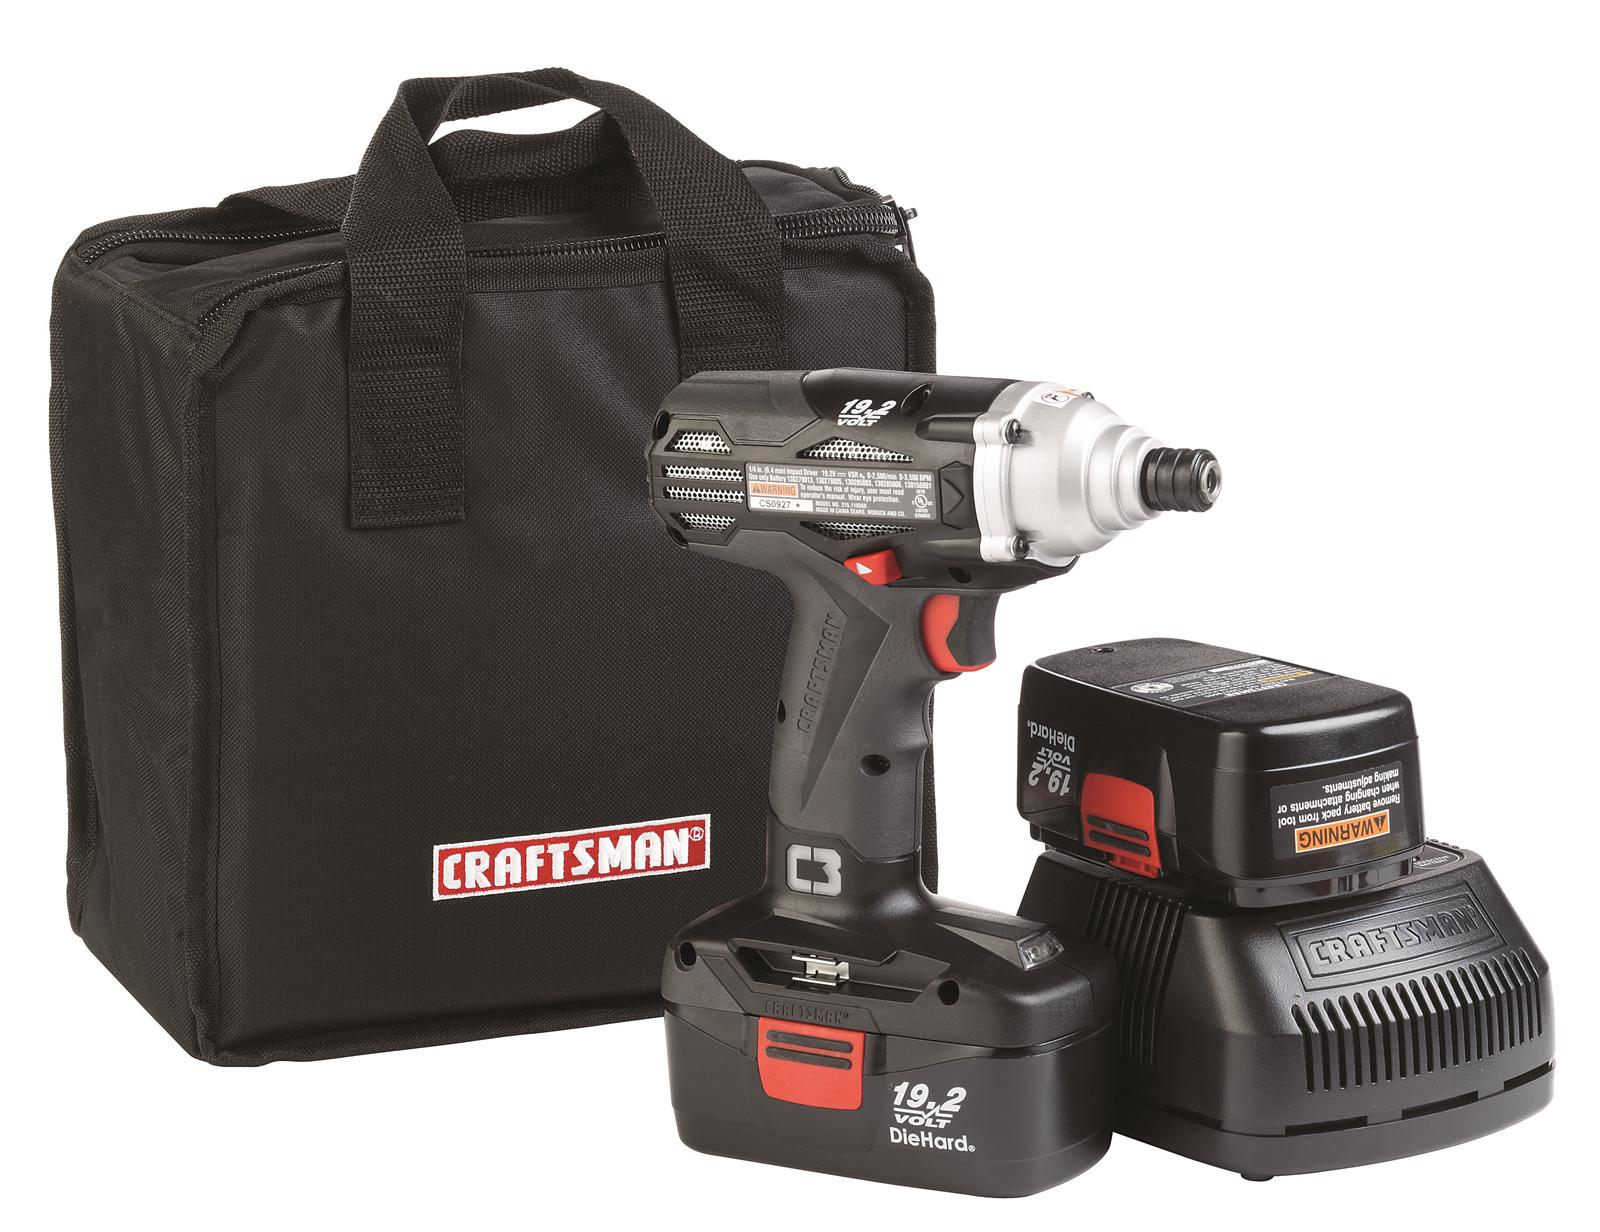 Craftsman C3 19 2 V Cordless Impact Driver Kits 917338 Free Shipping On Orders Over 99 At Summit Racing